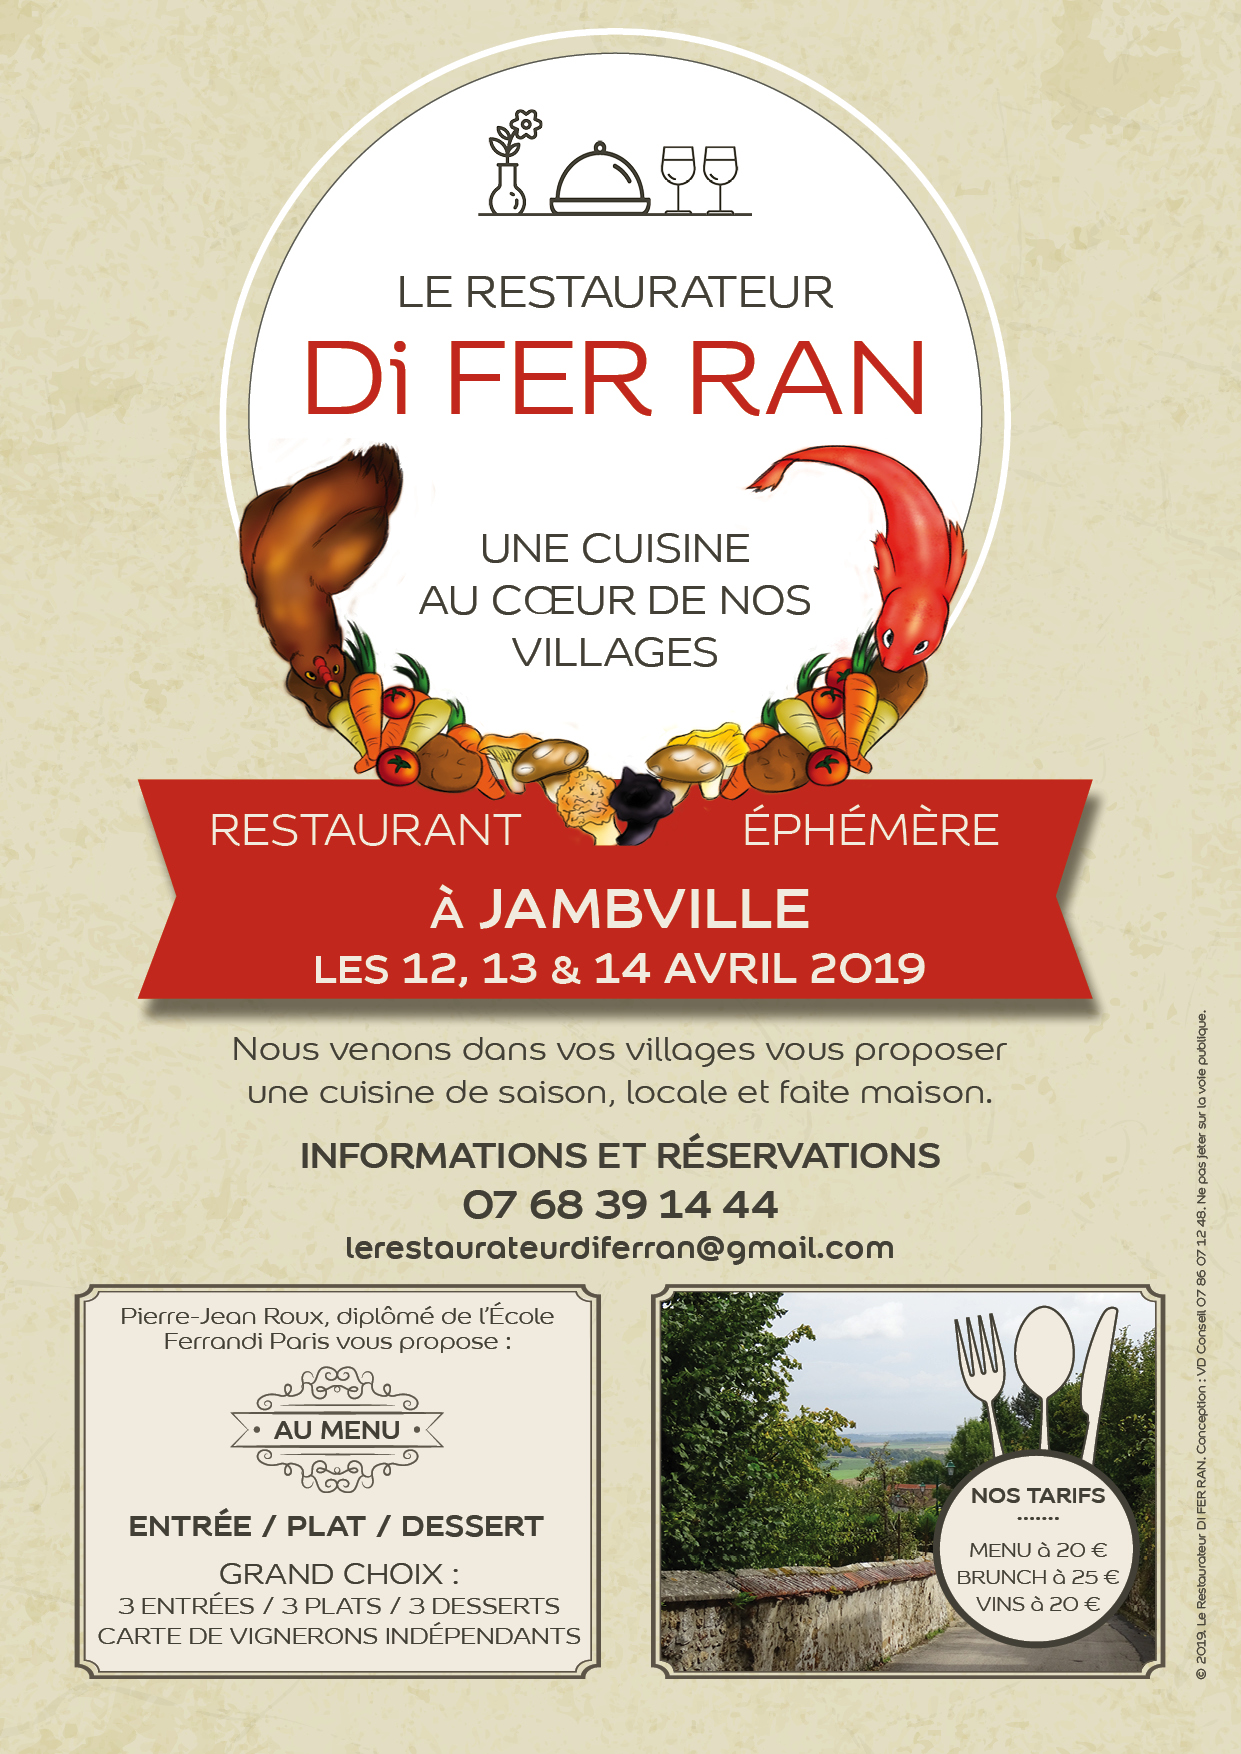 DIFERRAN Flyer Menu JAMBVILLEavril2019 web a12f0